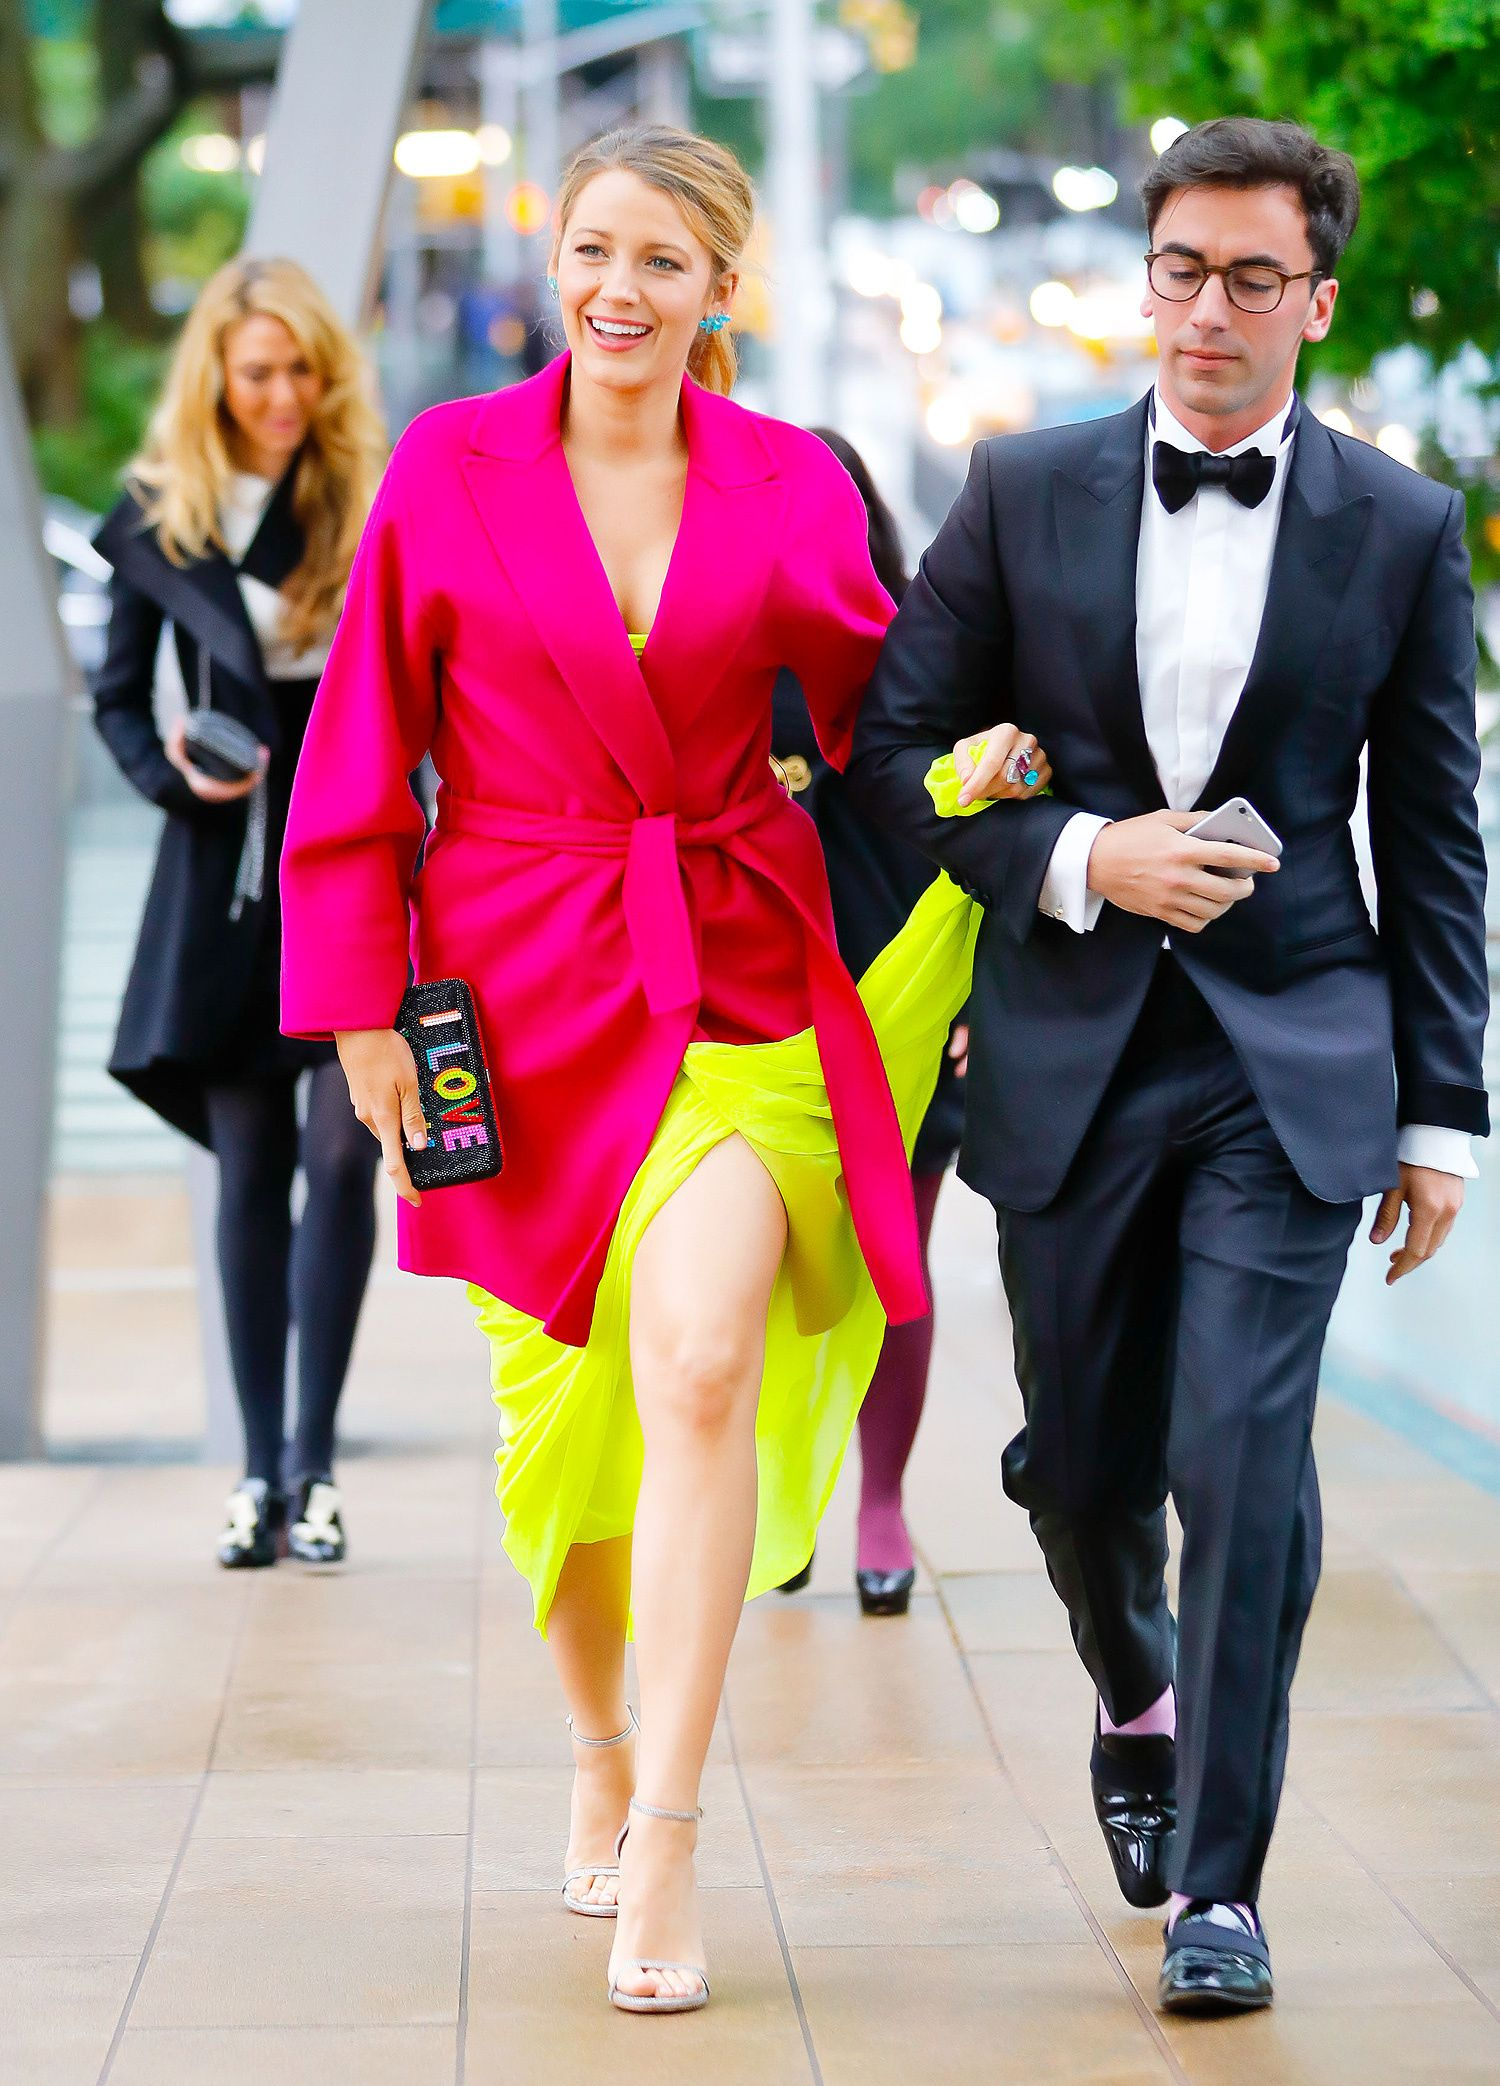 107dc8a209 Blake Lively in neon pink coat and neon yellow gown at American Ballet  Theater Gala Gotham GC Images